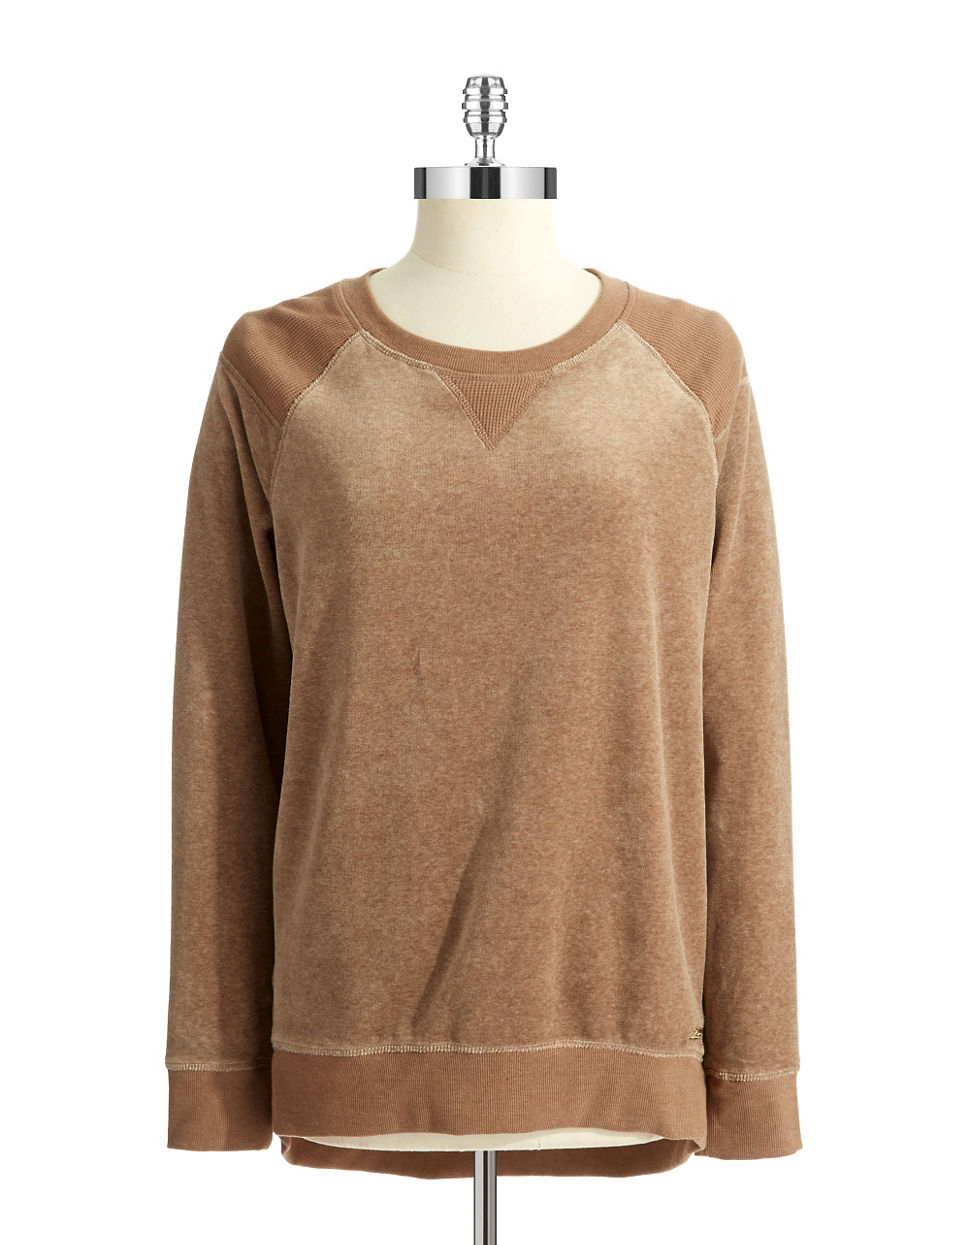 calvin klein plush pullover in brown lyst. Black Bedroom Furniture Sets. Home Design Ideas